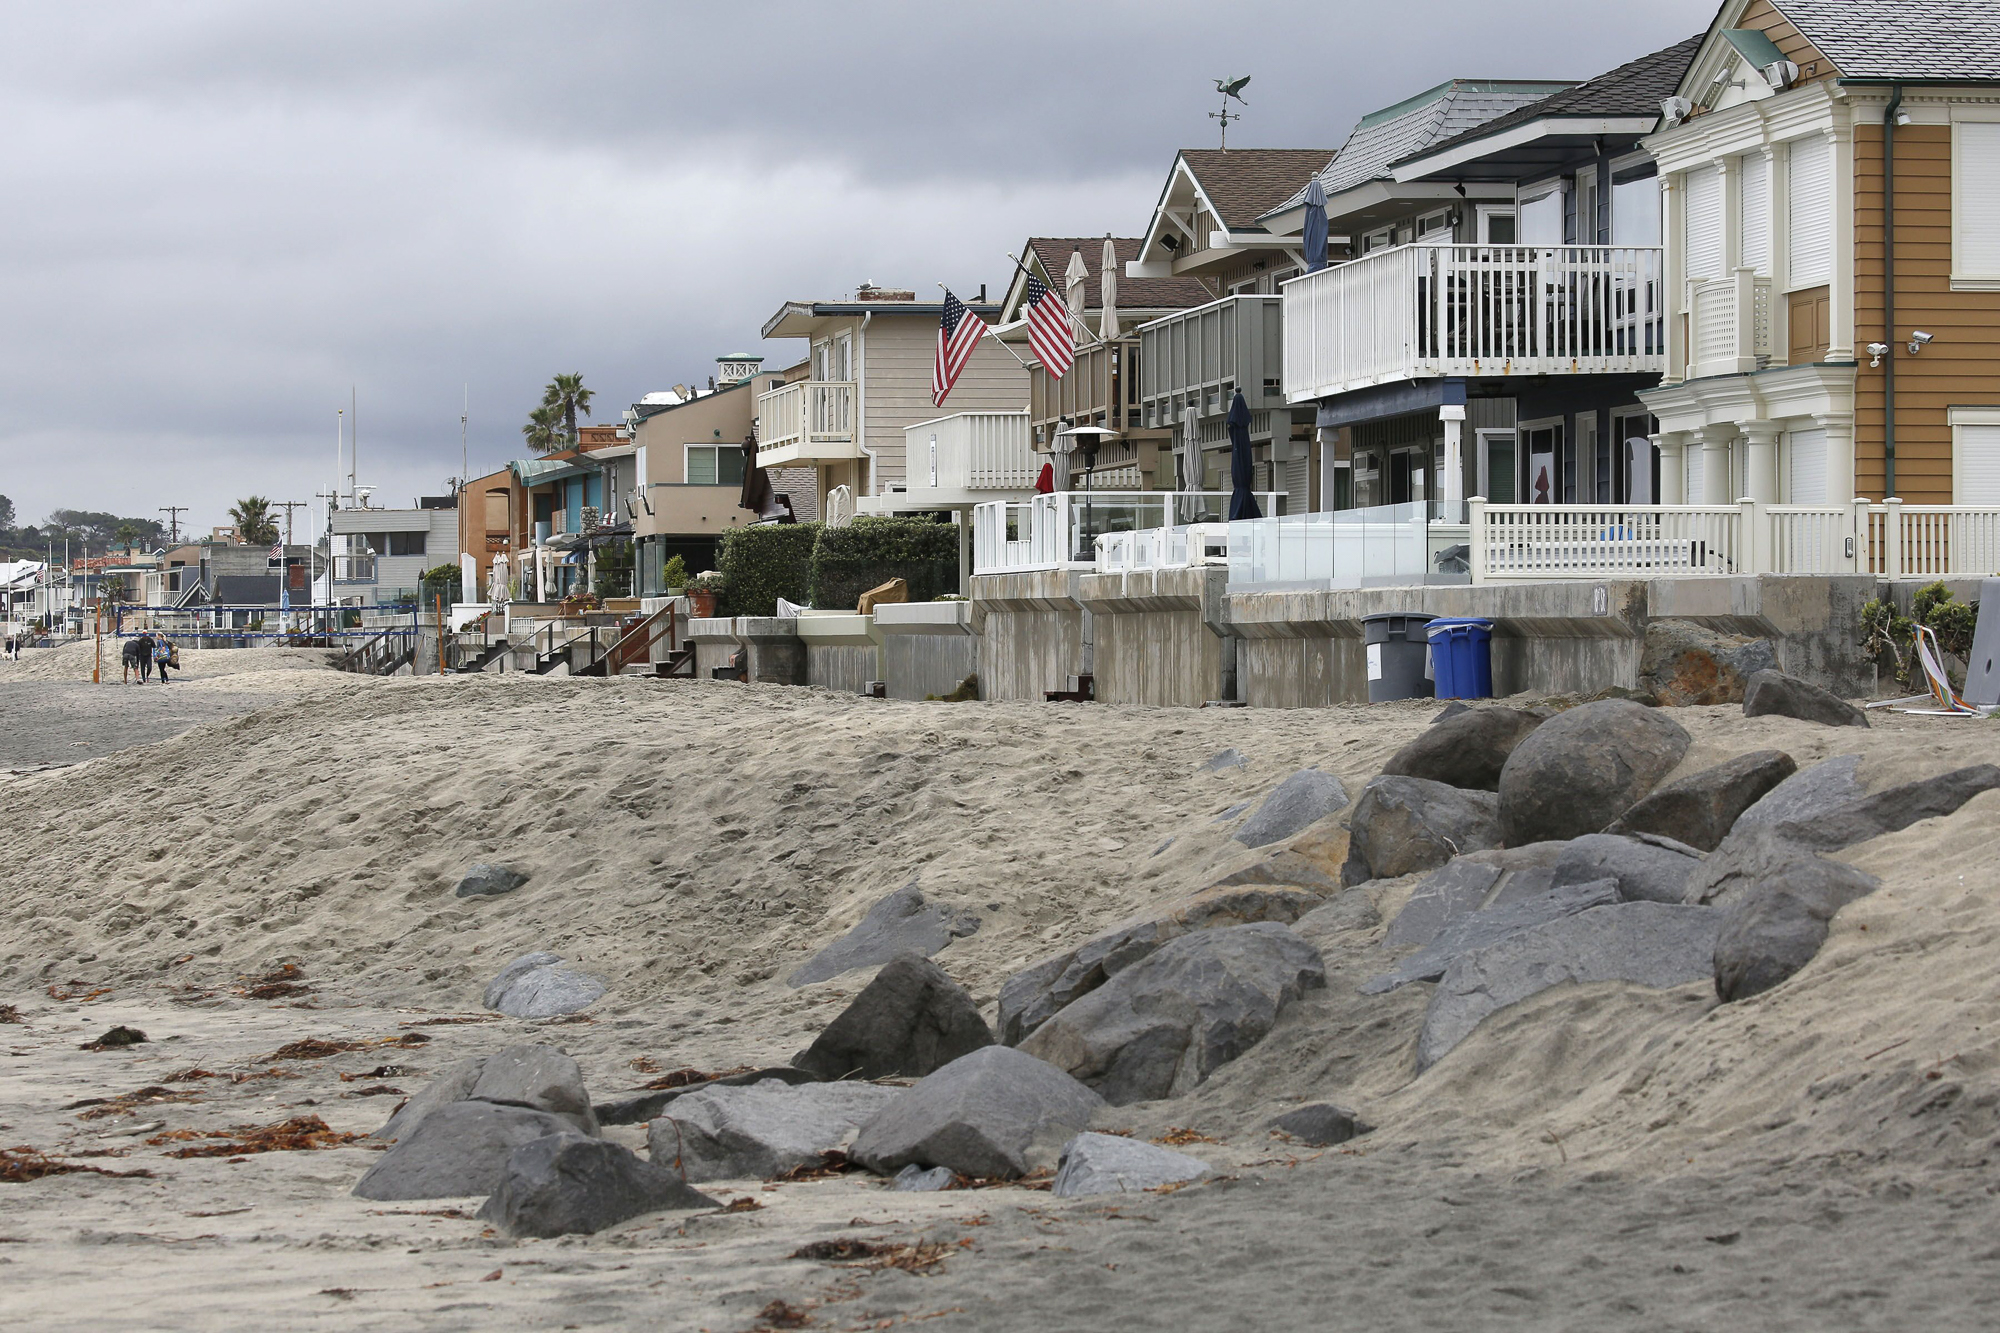 Sand-and-rock berms form a barrier along beachfront homes in Del Mar, California, March 2020. Photo by Peggy Peattie for CalMatters